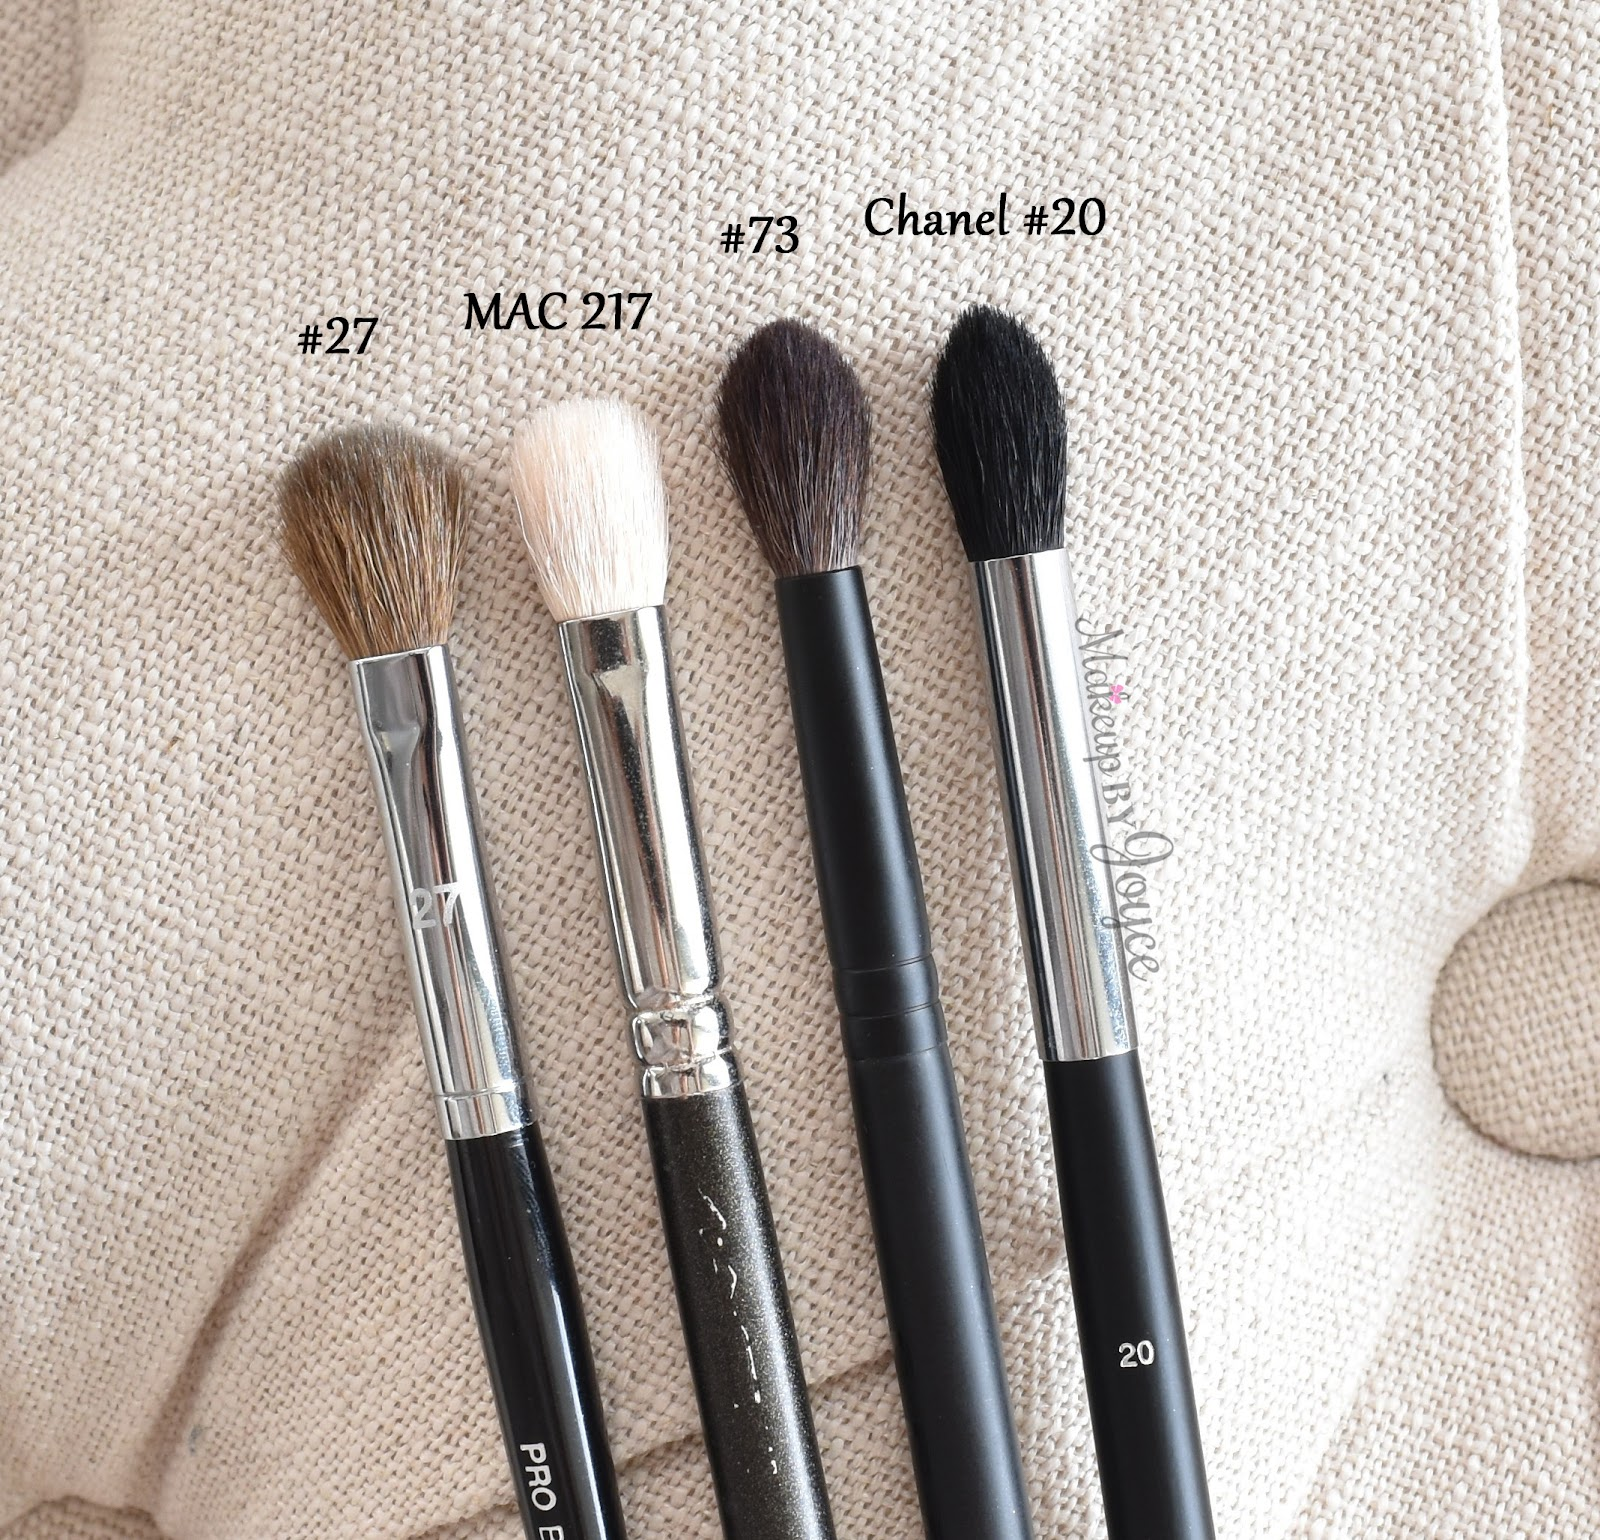 PRO Bent Liner Brush #23 by Sephora Collection #14